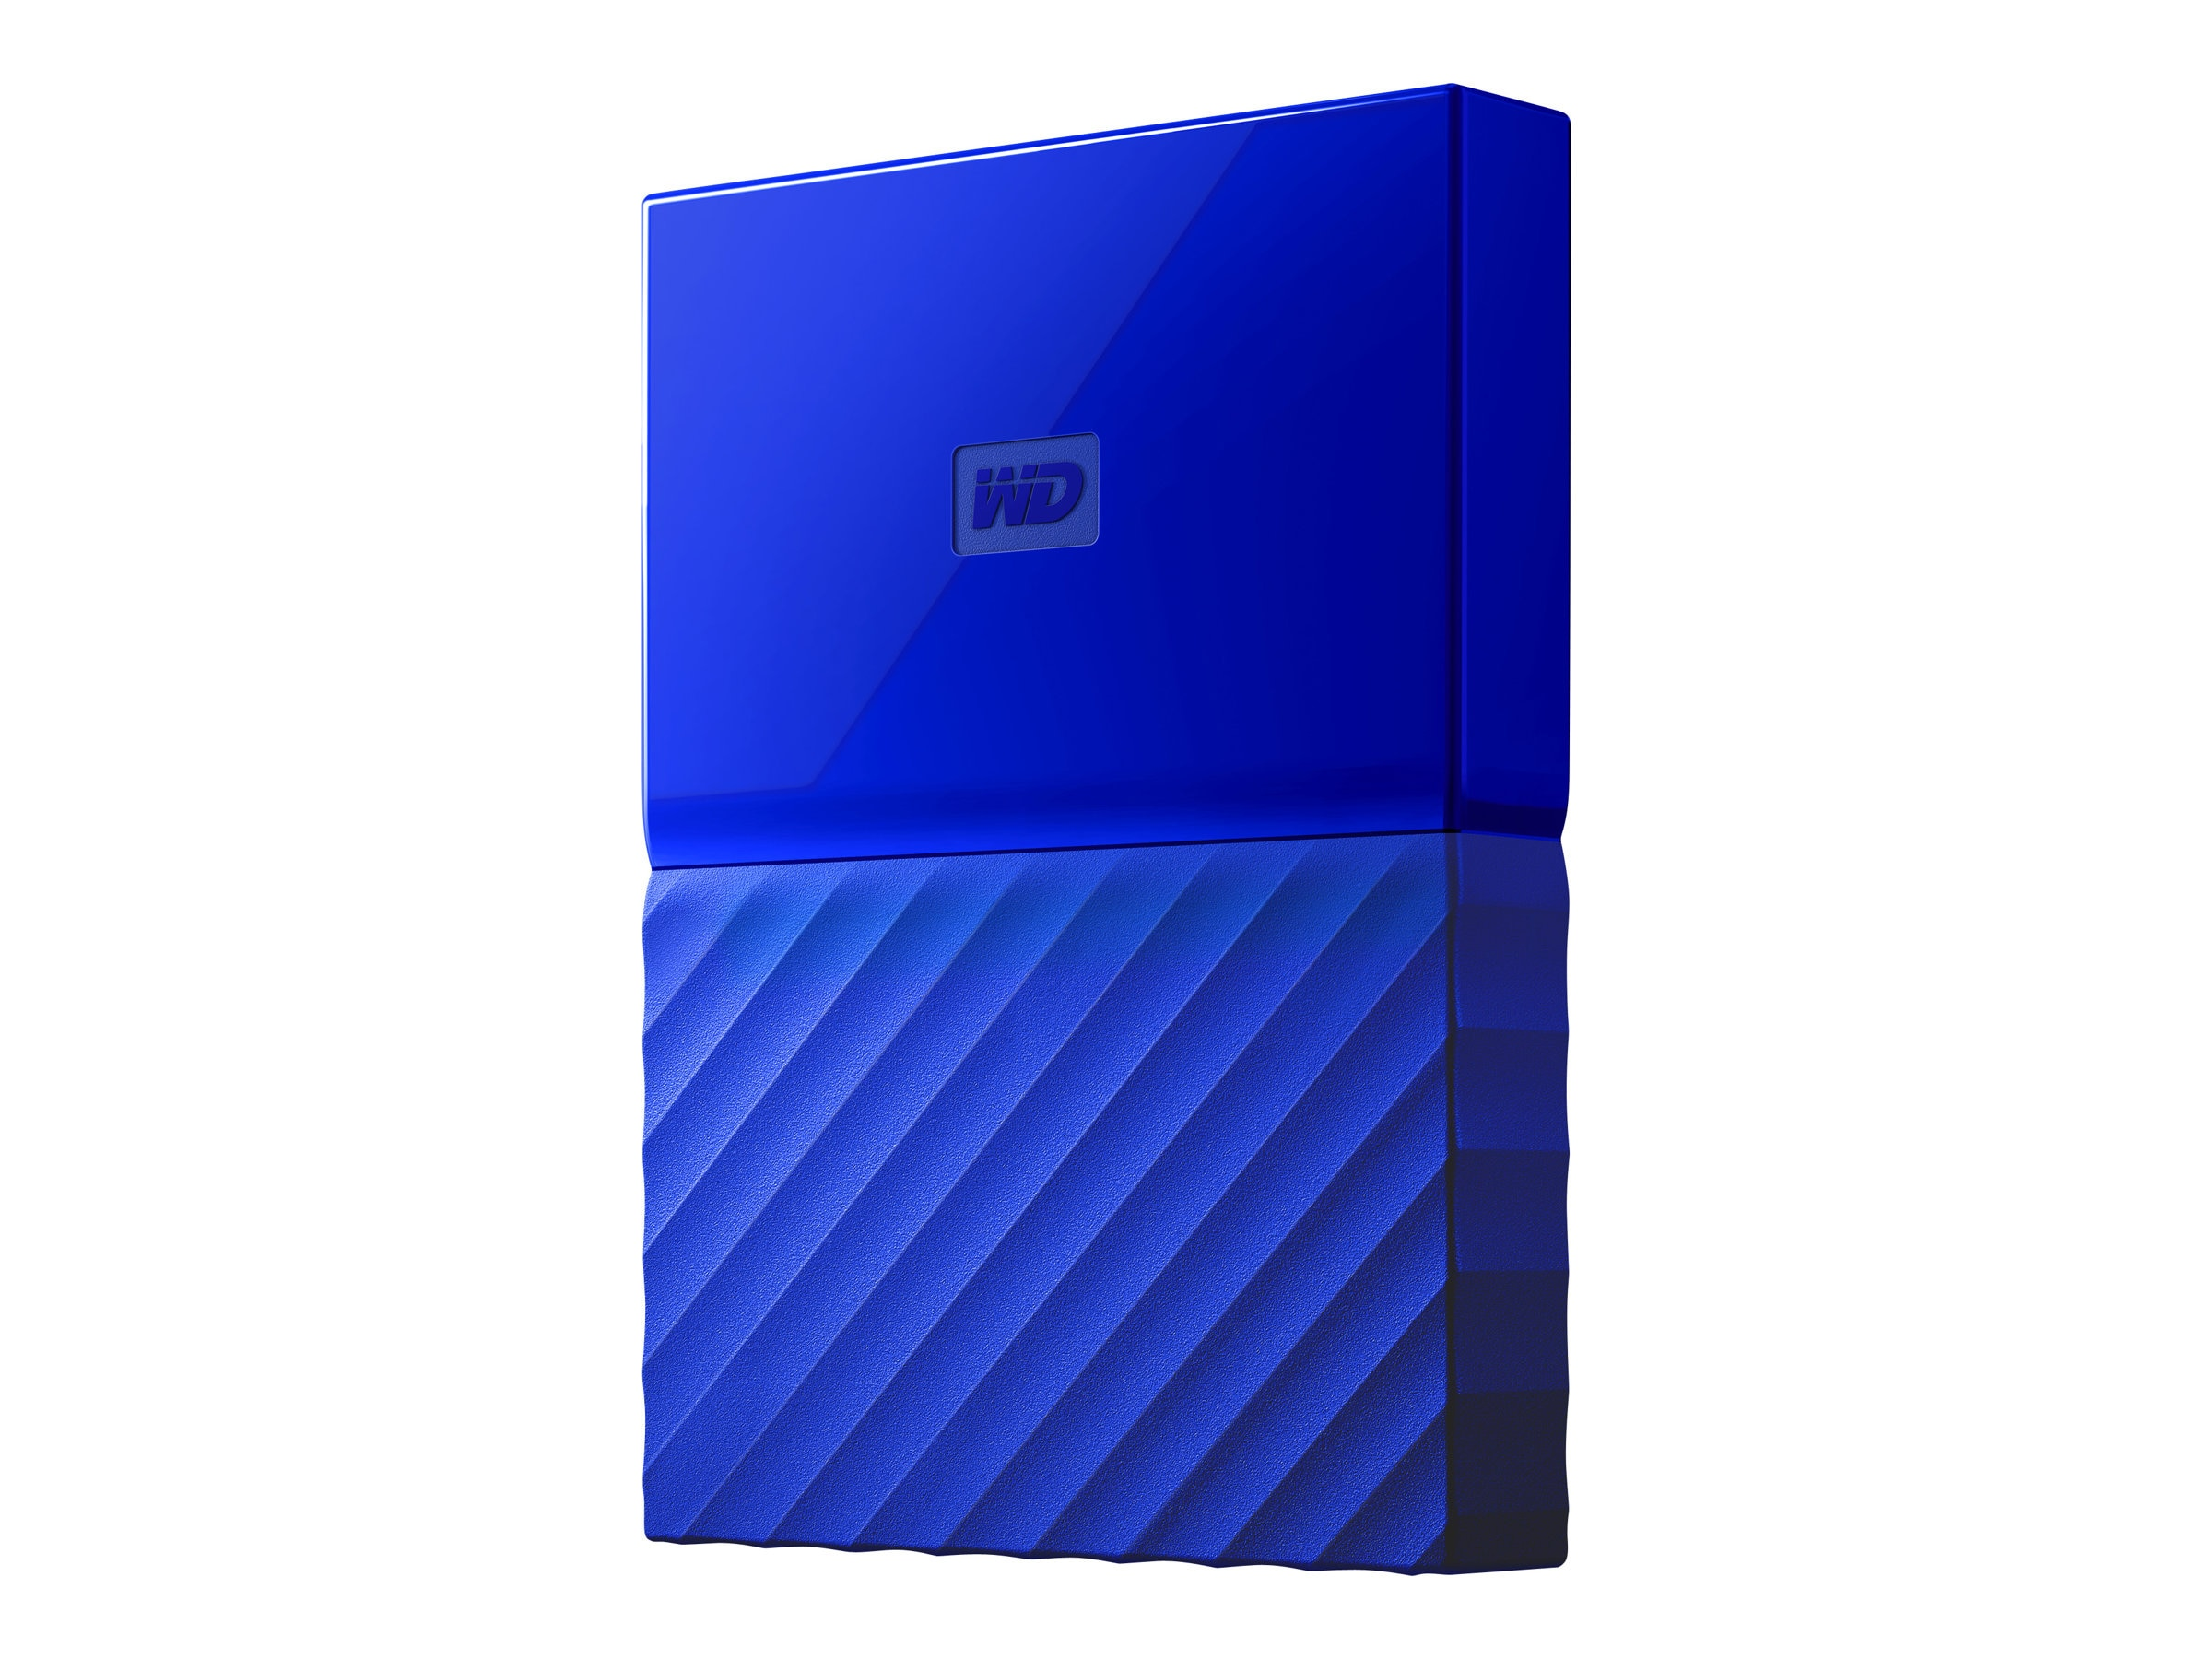 WD 3TB My Passport USB 3.0 Portable Hard Drive - Blue